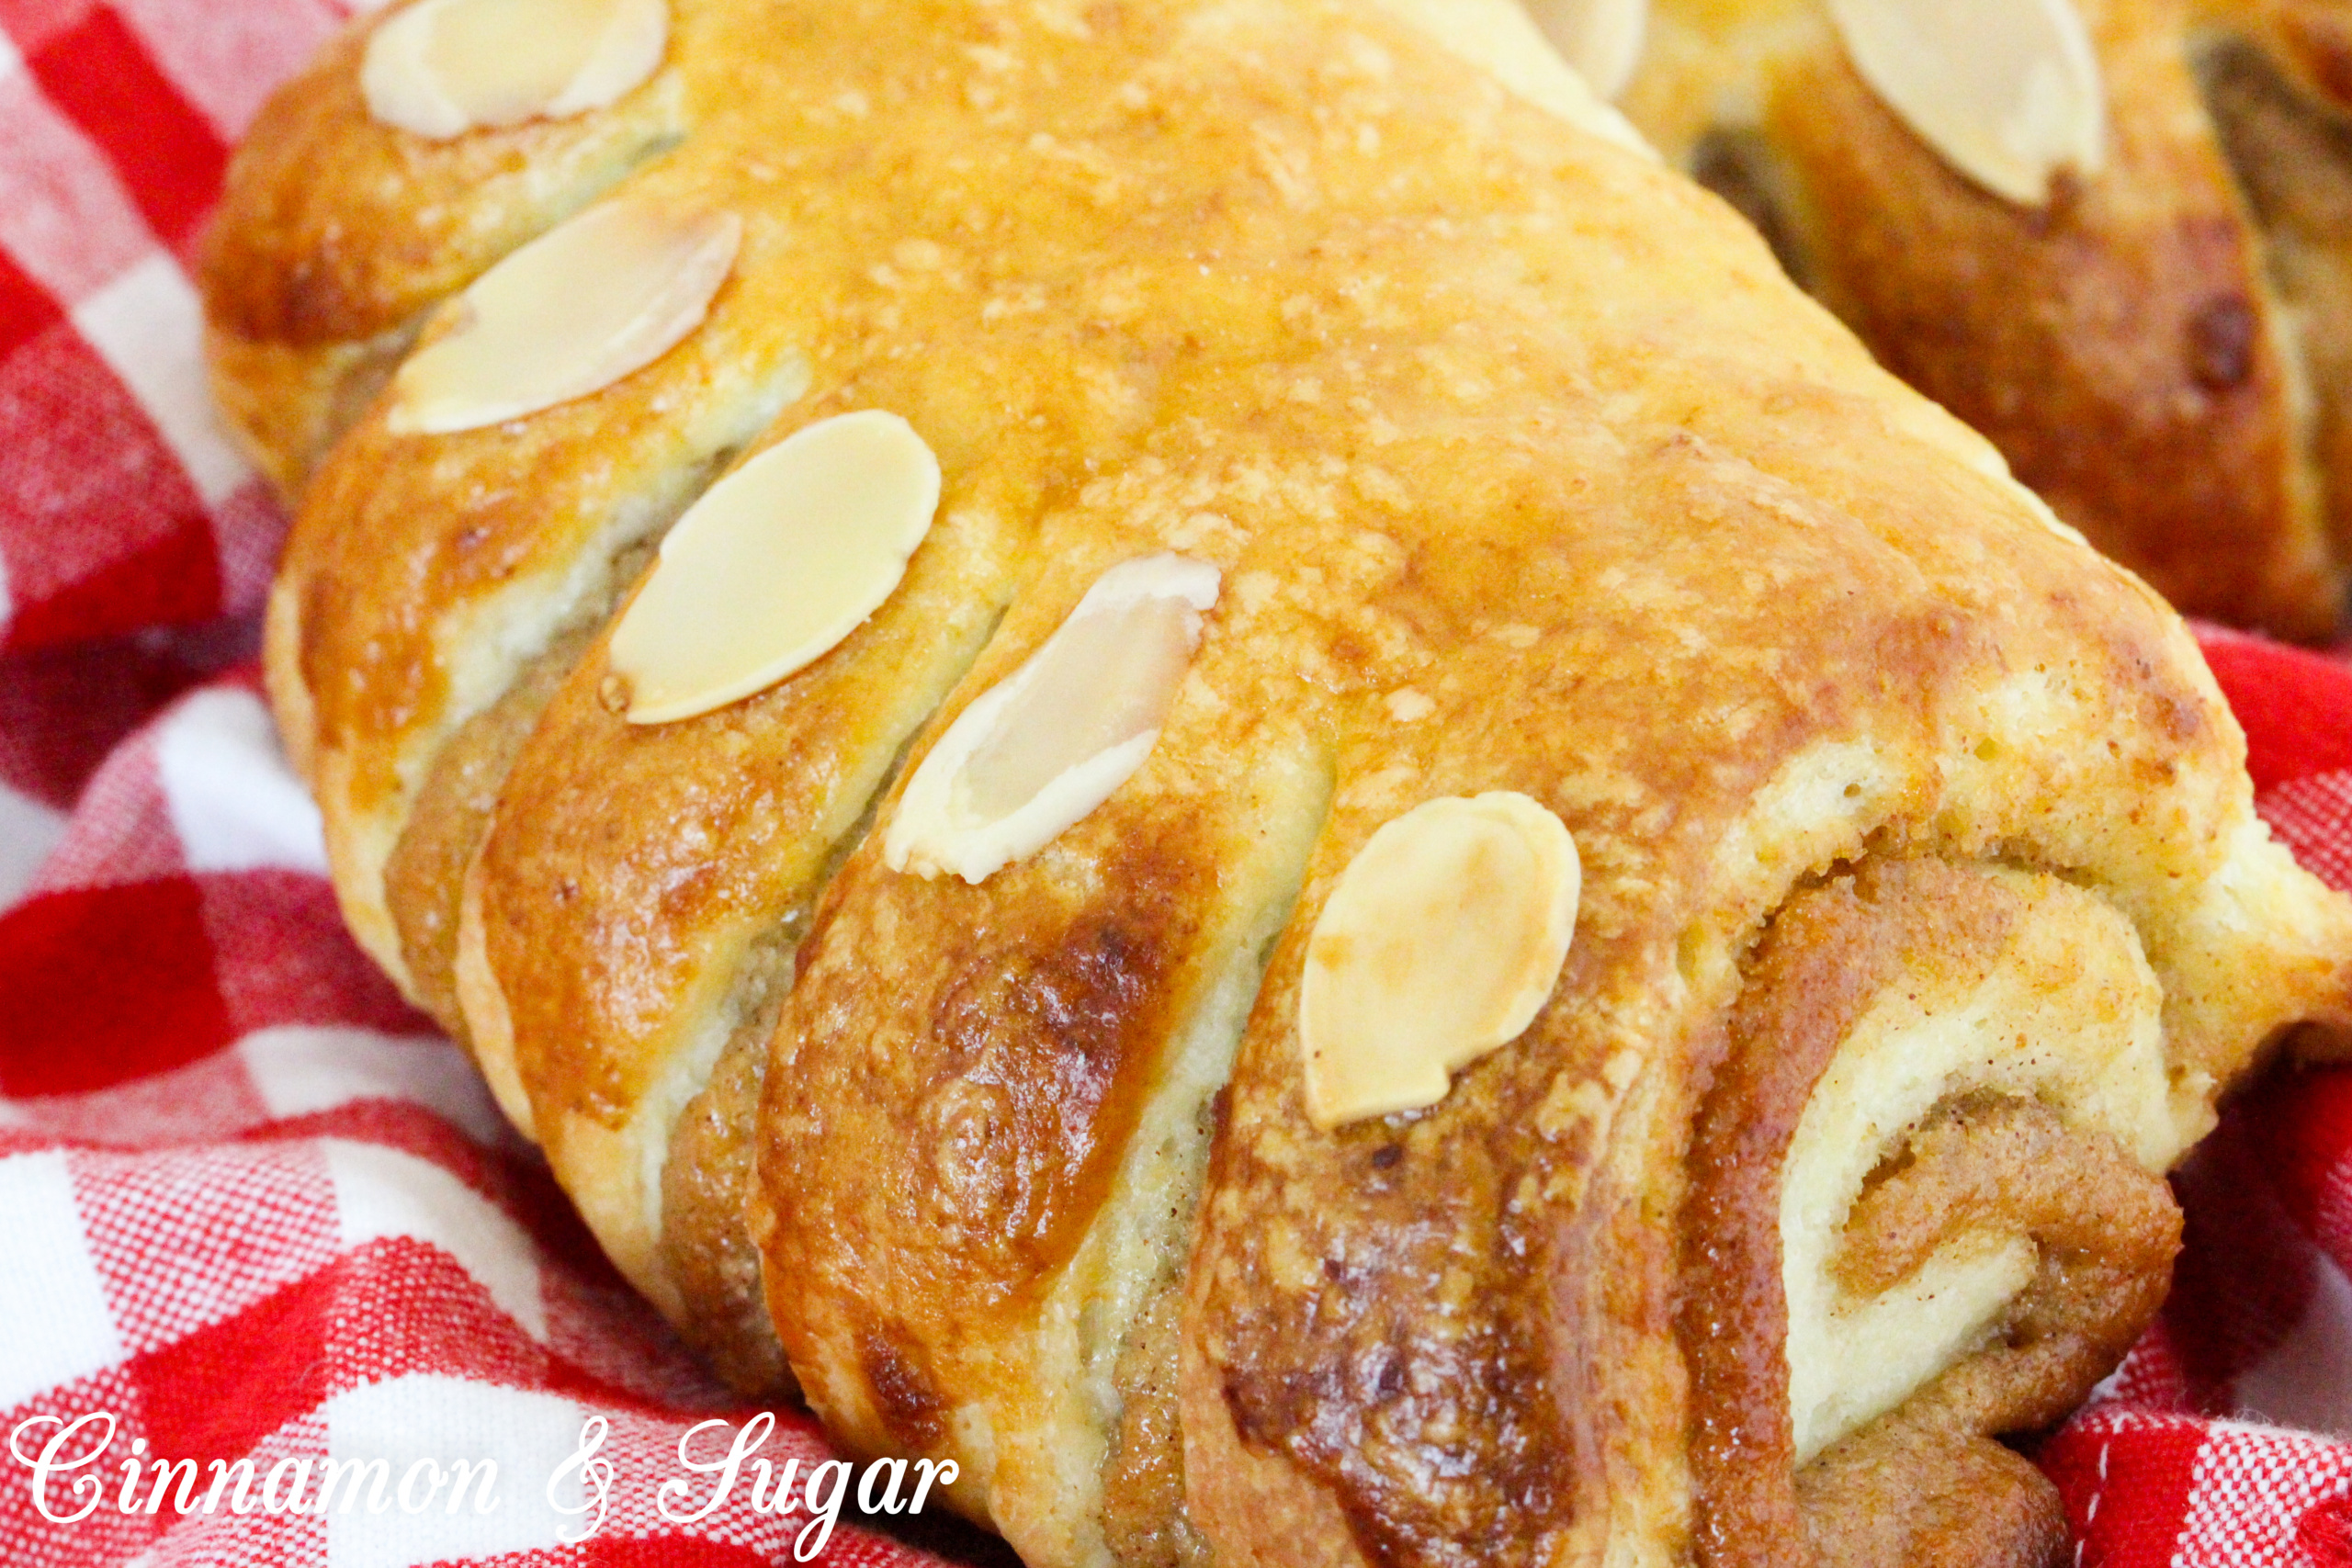 With flaky pastry encasing a sweet almond filling, these Almond Bear Claws are a scrumptious addition to breakfast, brunch, or coffee break! Recipe shared with permission granted by Elizabeth Logan, author of MOUSSE AND MURDER.